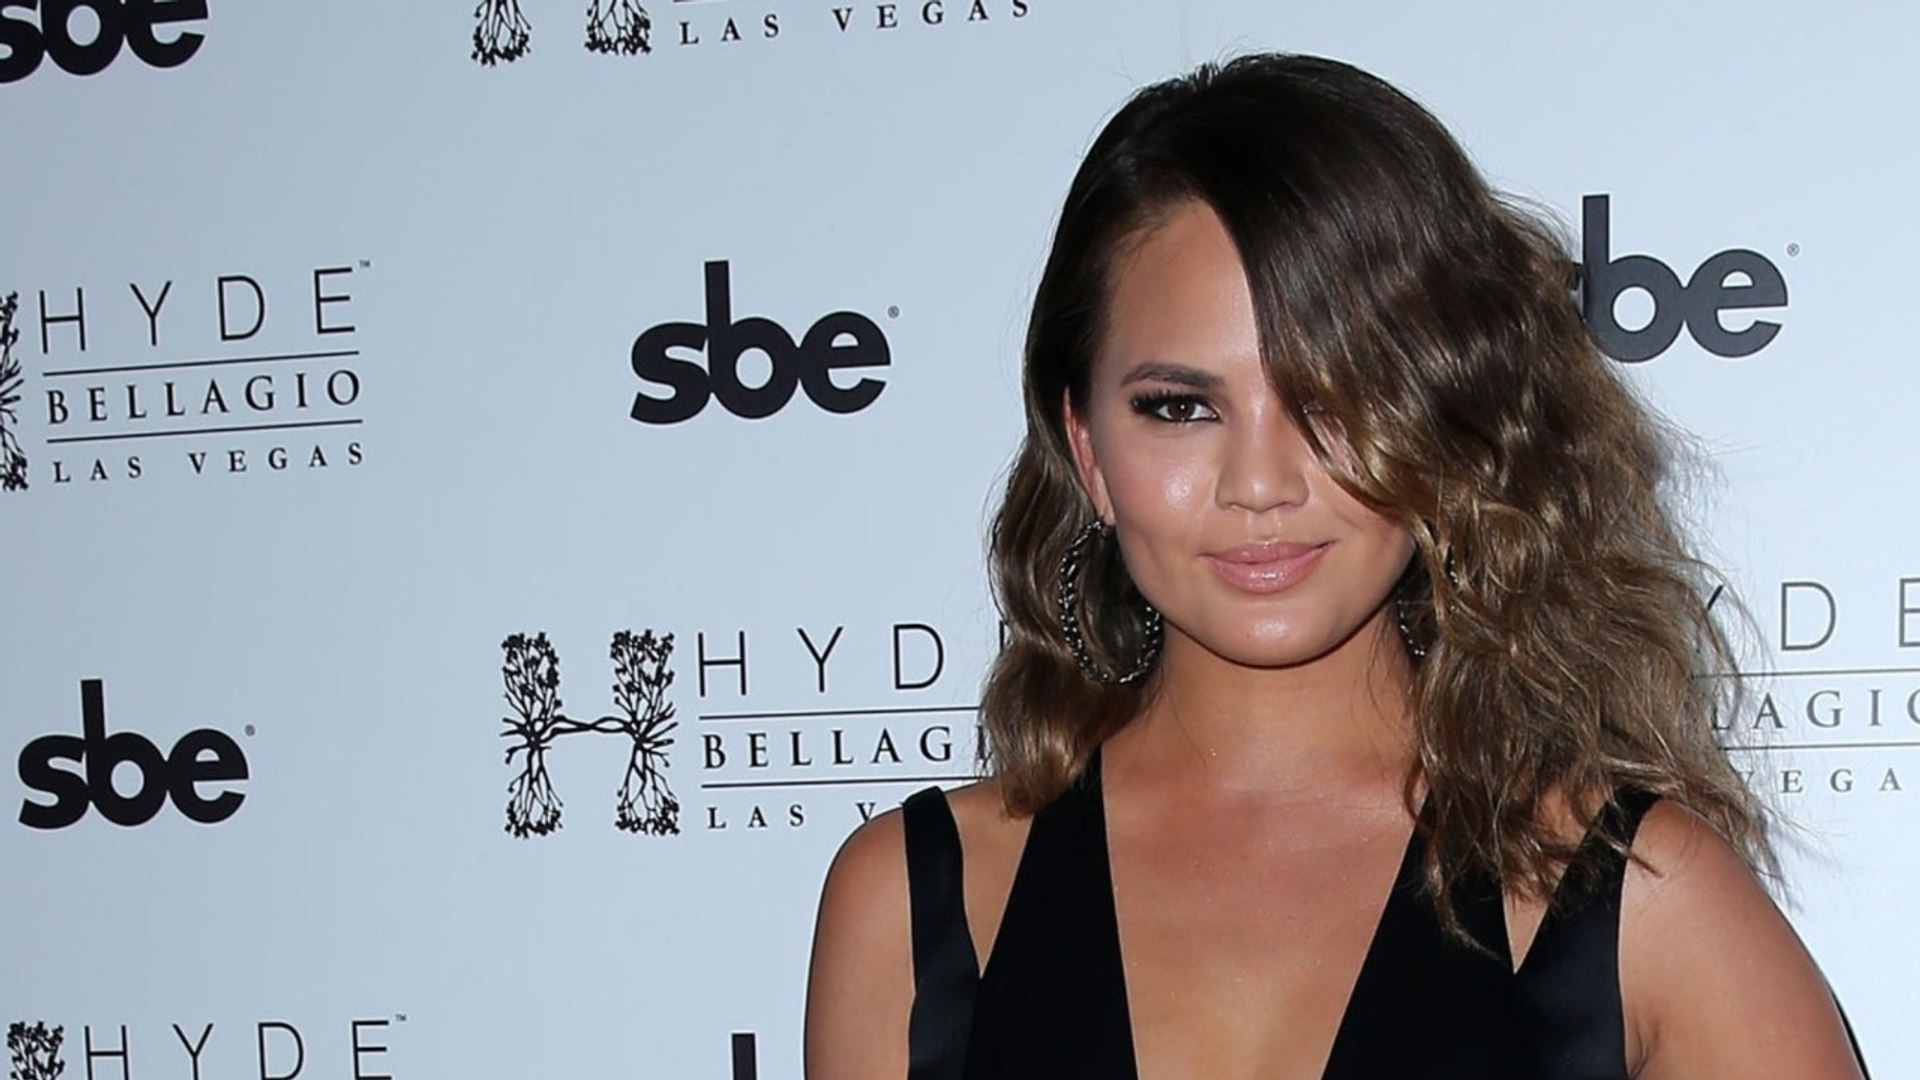 Chrissy Teigen Makes Instagram And Twitter Private After Being Attacked On Twitter